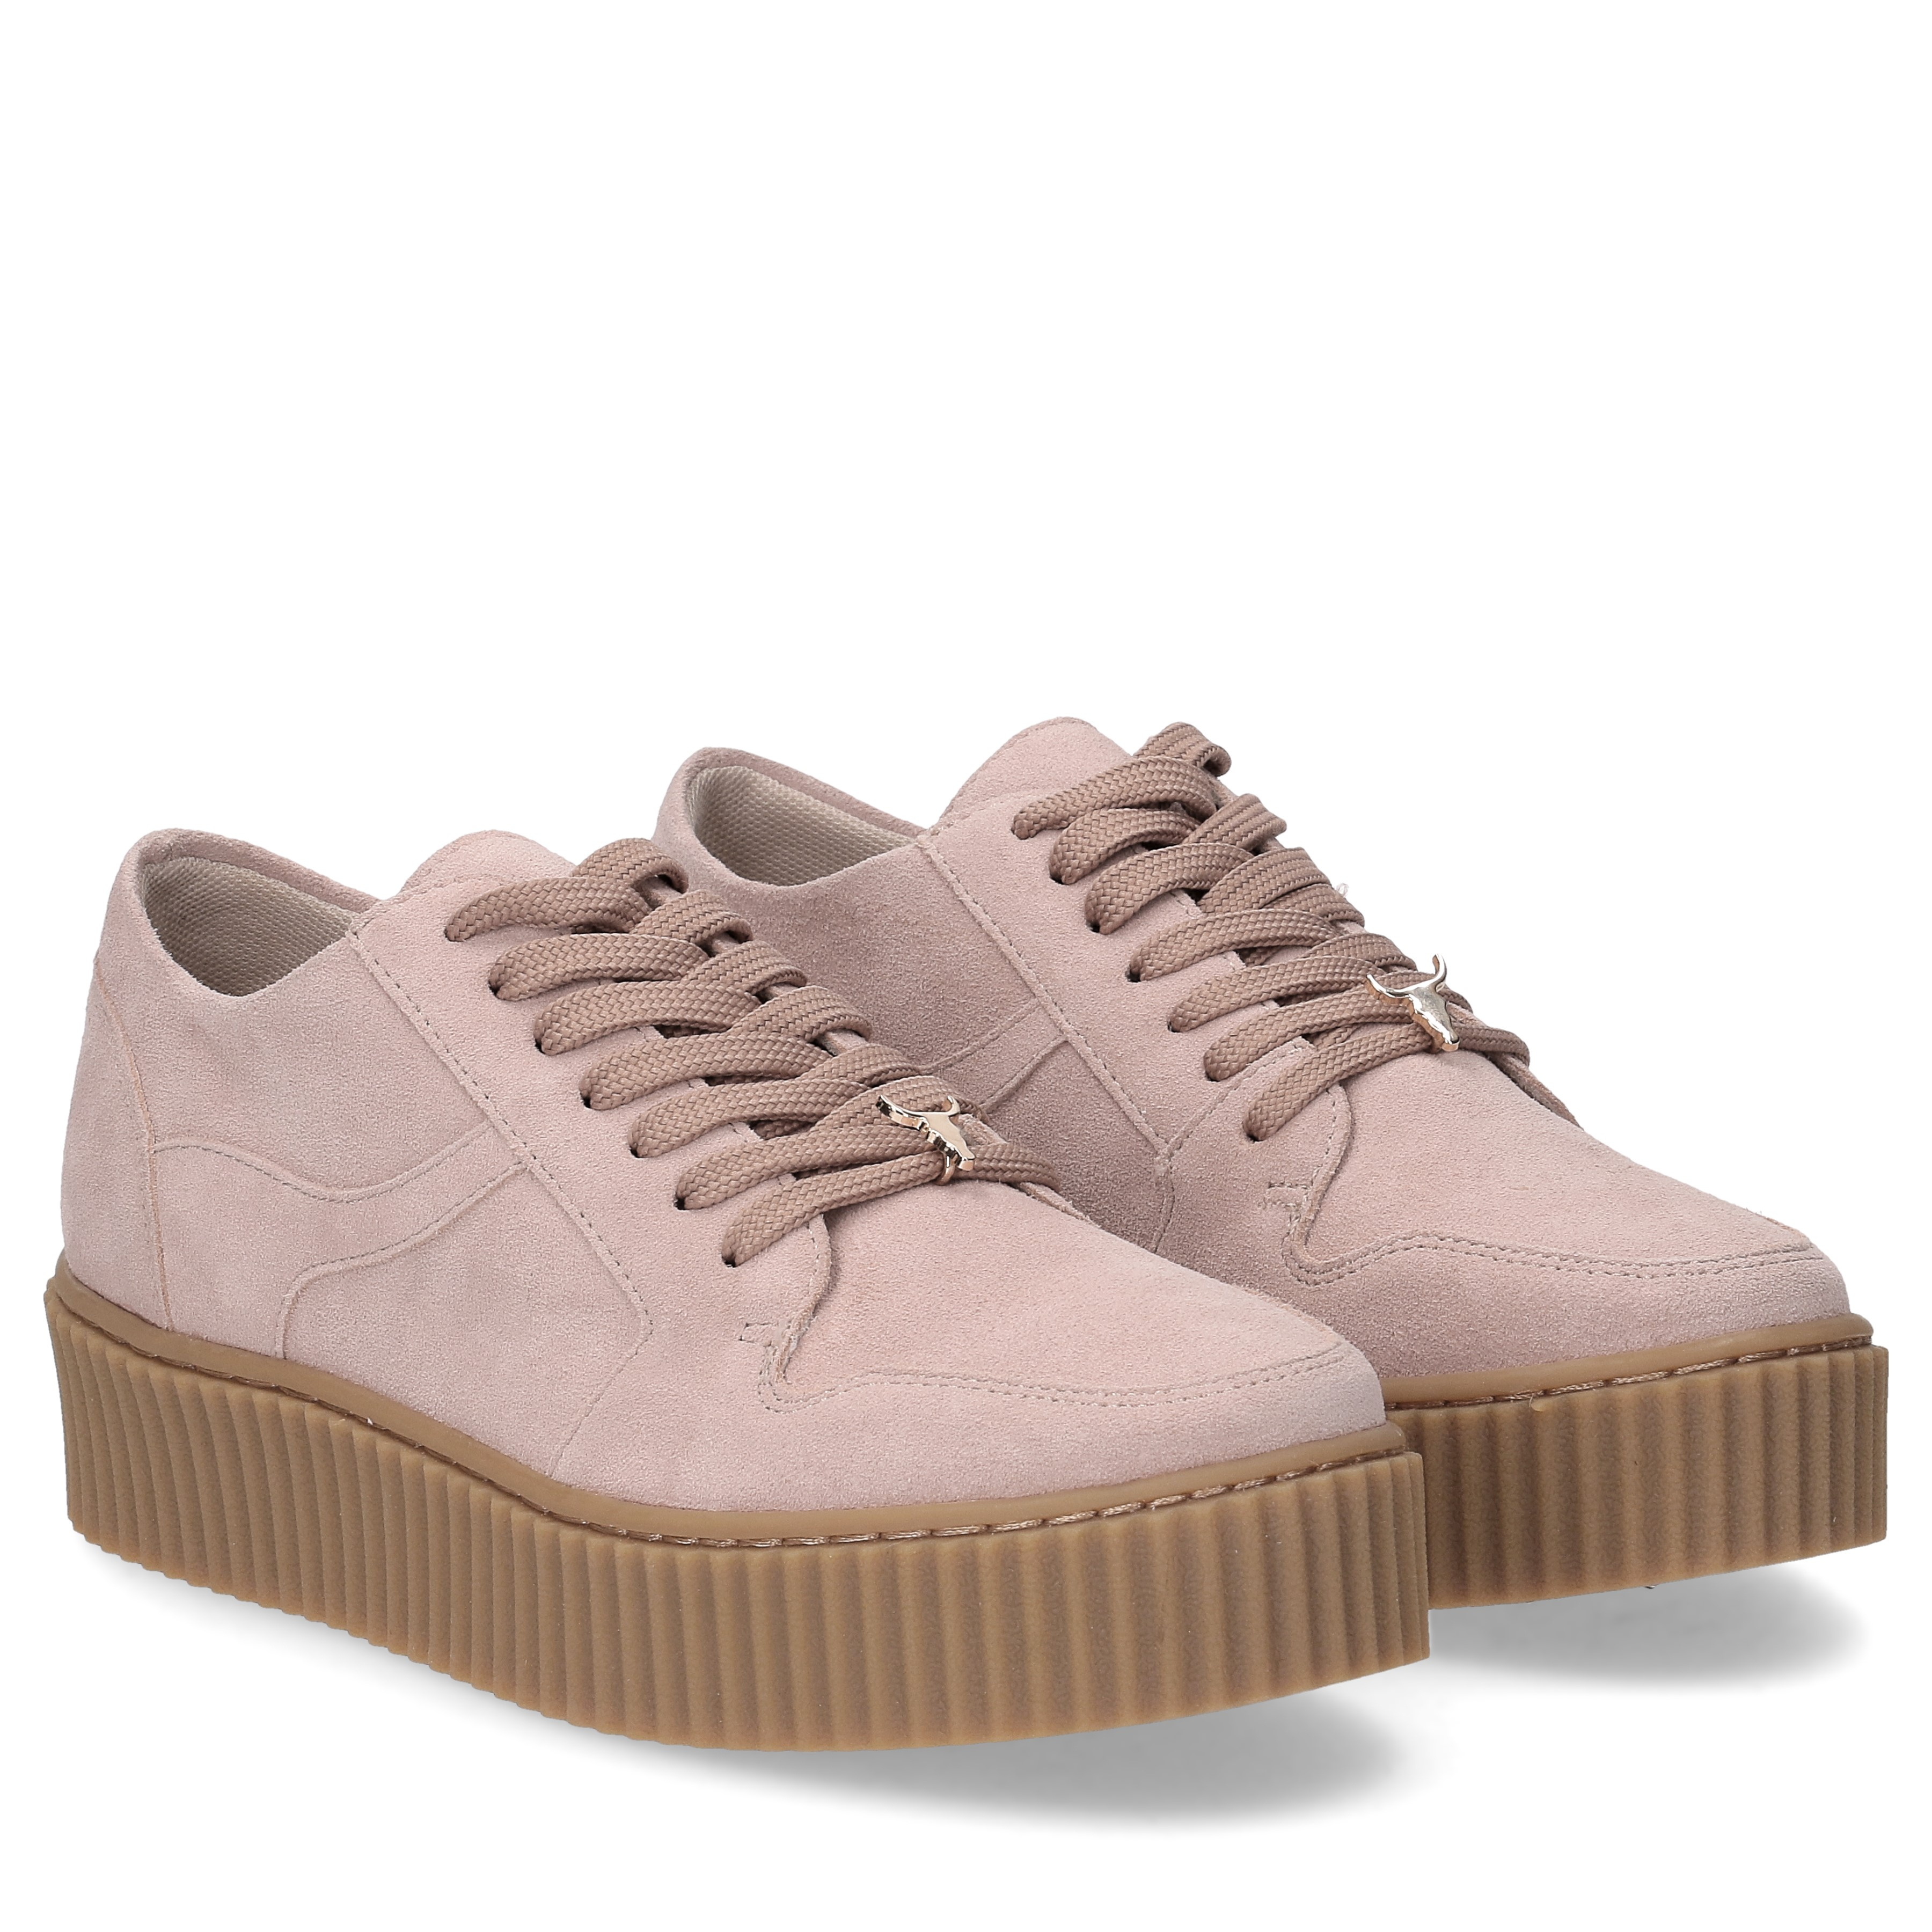 Windsor Smith Oracle dust pink suede